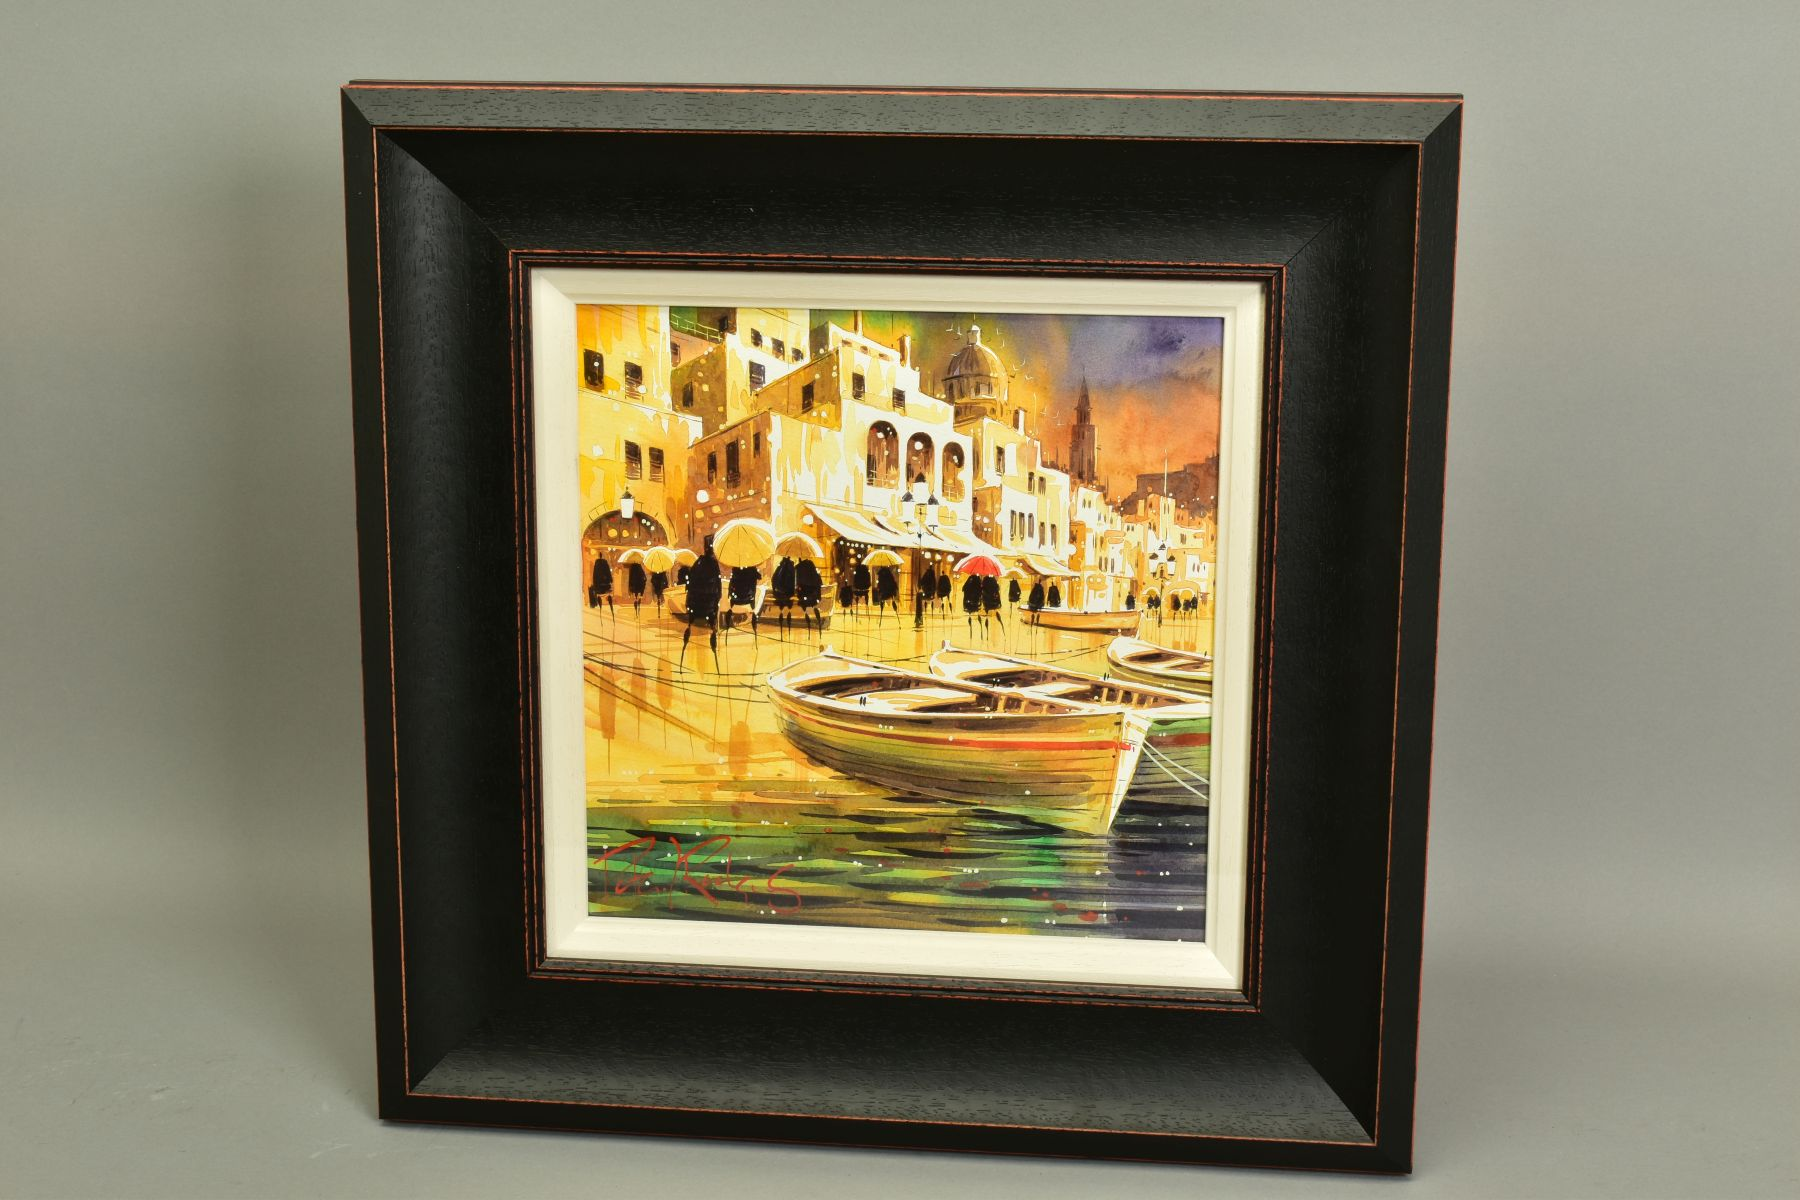 PETER J. RODGERS (BRITISH CONTEMPORARY), 'Reflections, Naples', an Italian Promenade on a rainy - Image 4 of 5